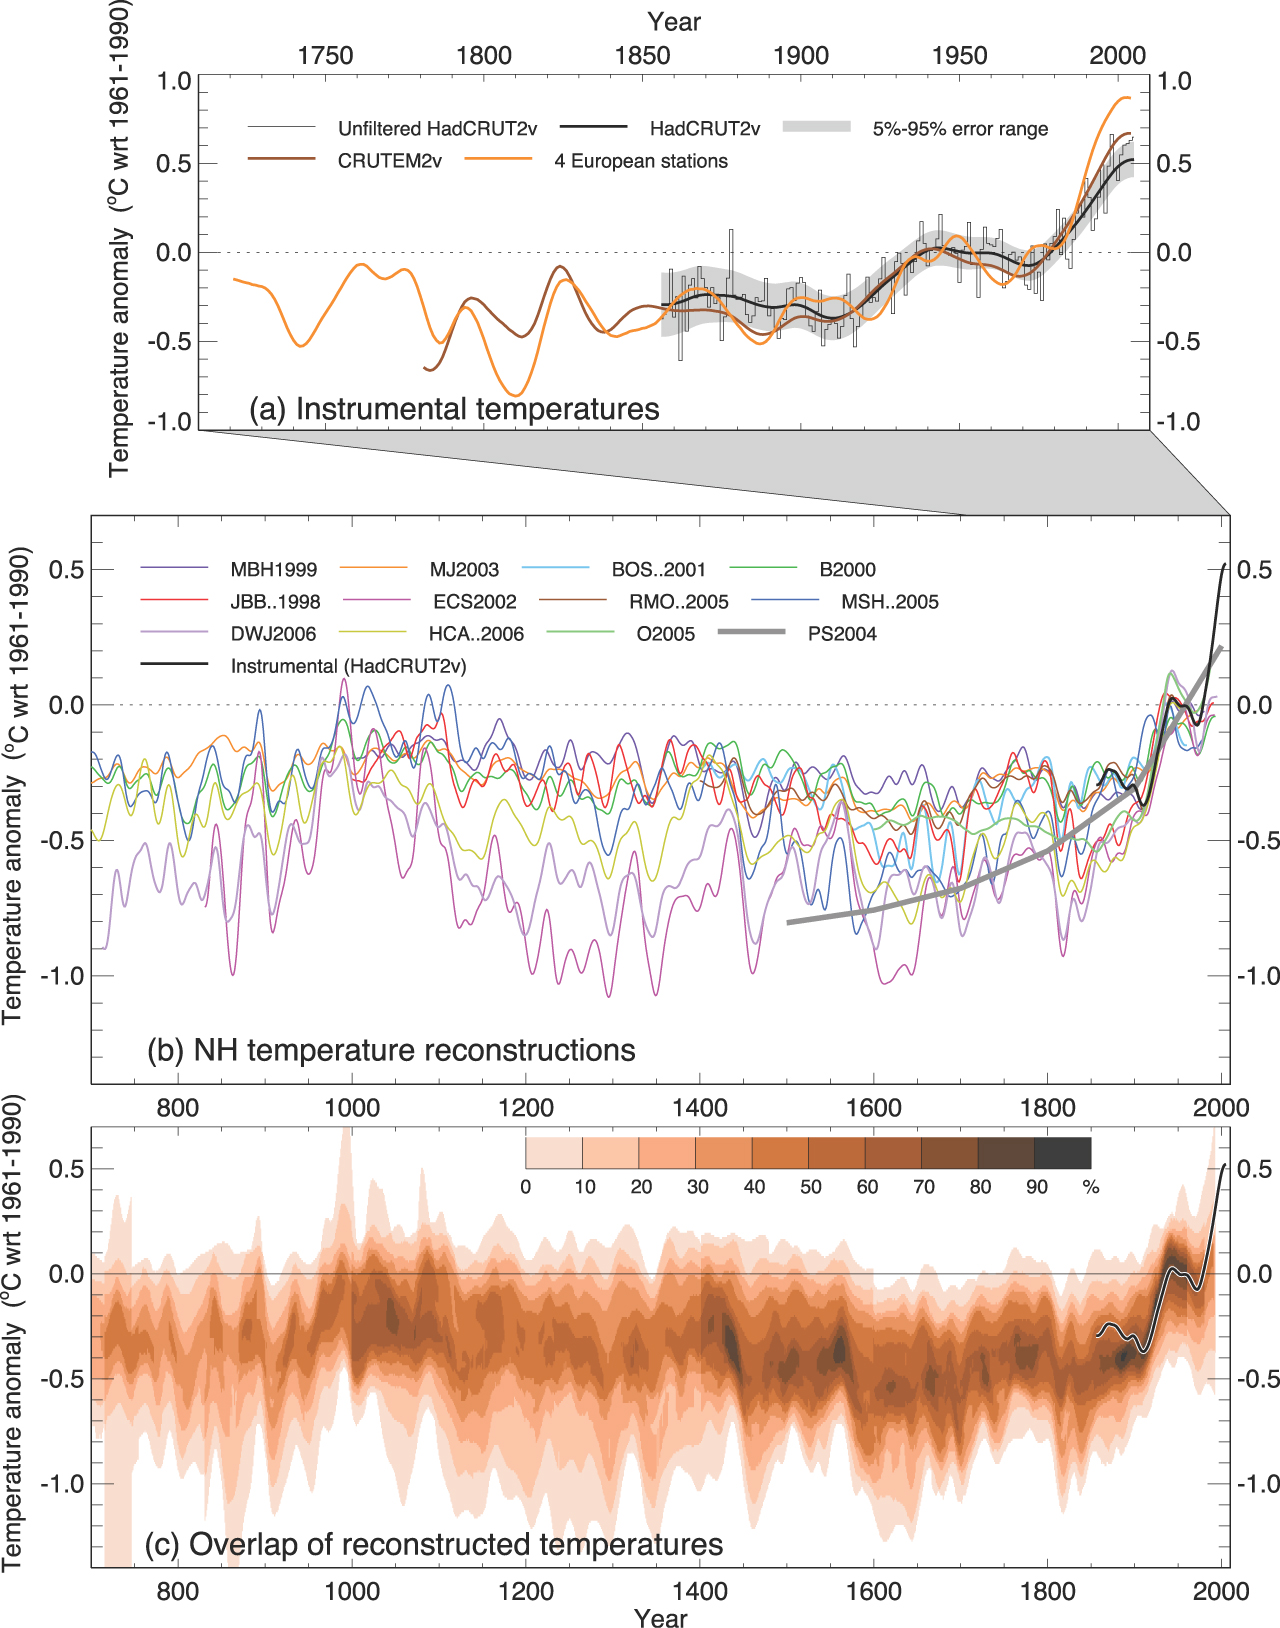 Multiple independent temperature reconstructions over the past 1000 years